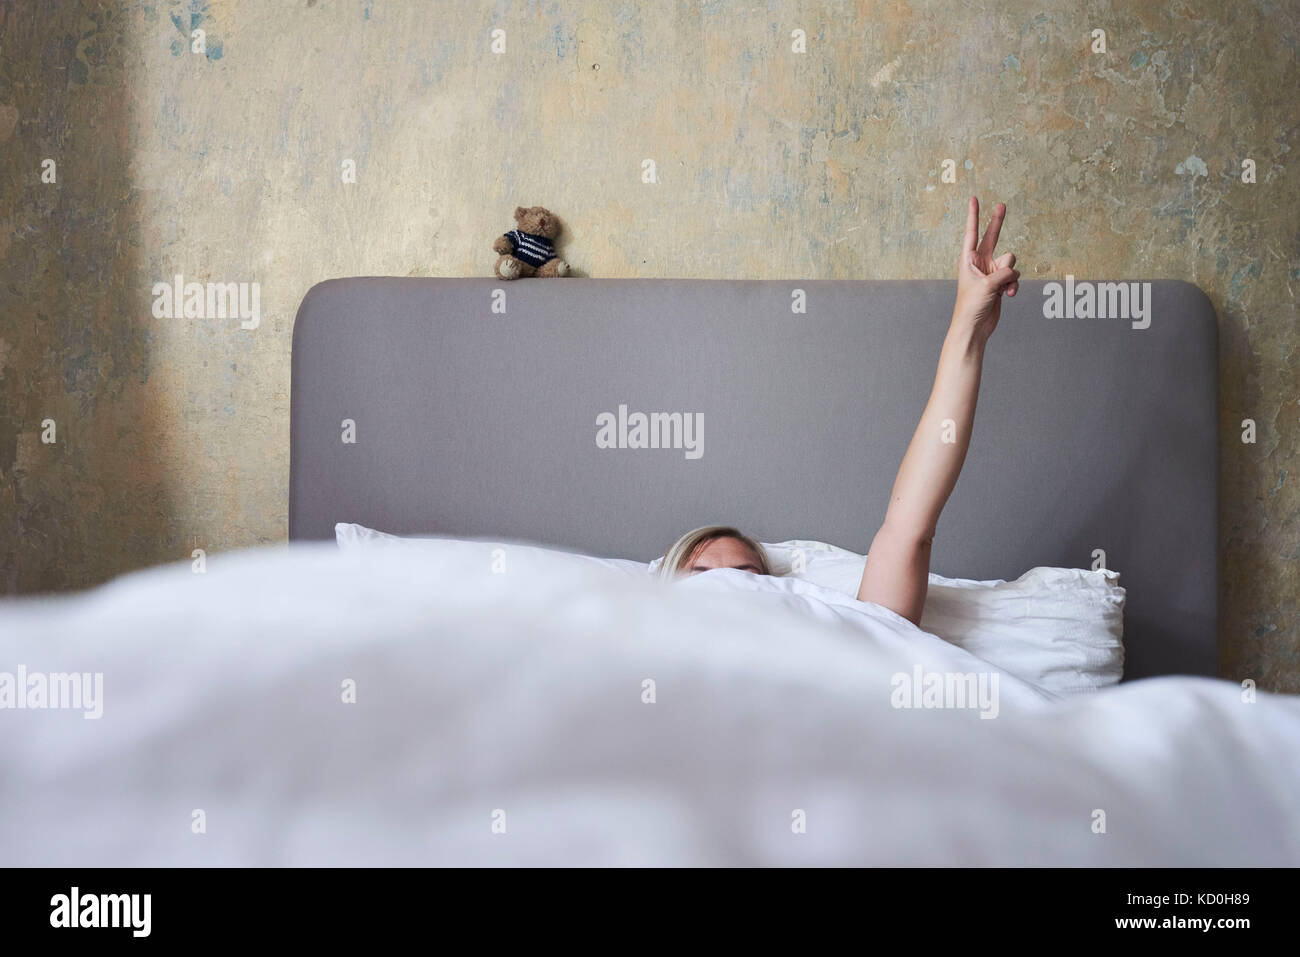 gesture photos gesture images alamy. Black Bedroom Furniture Sets. Home Design Ideas